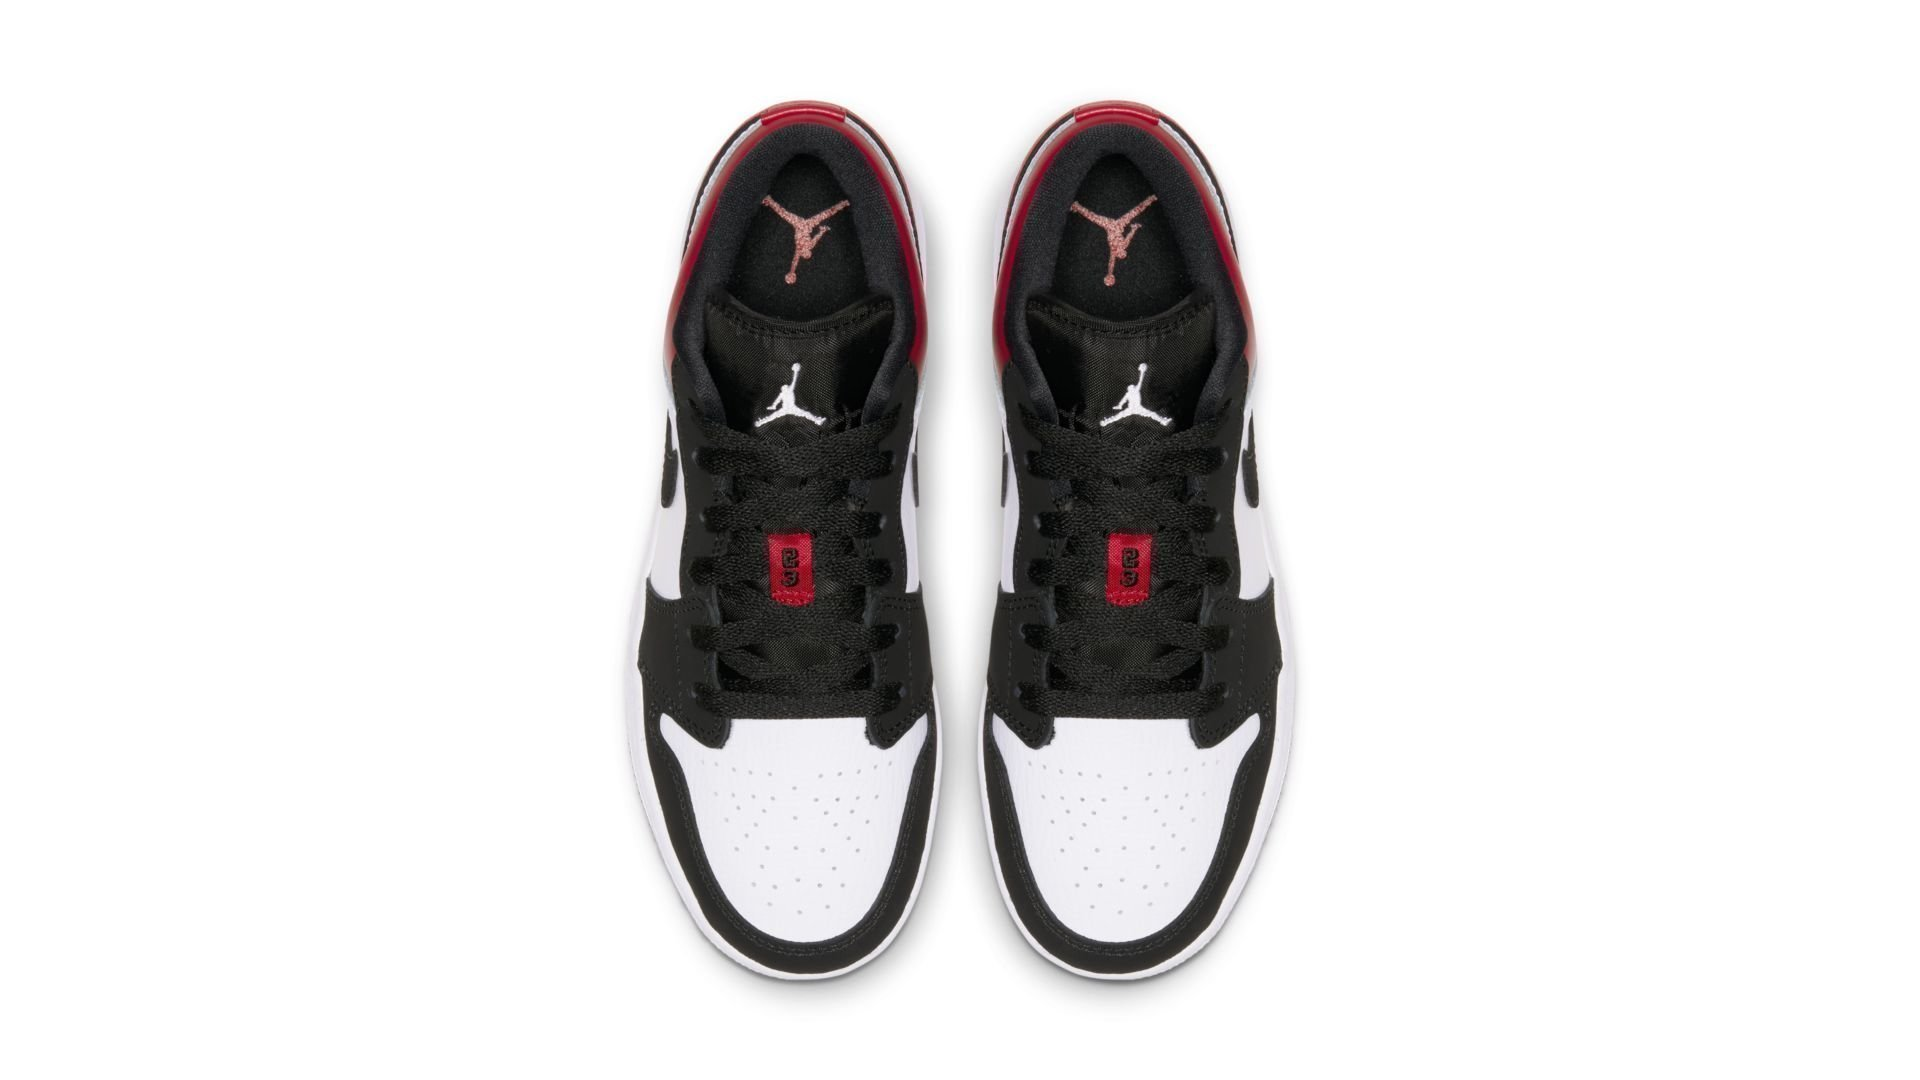 Jordan 1 Low Black Toe (GS) (553560-116)